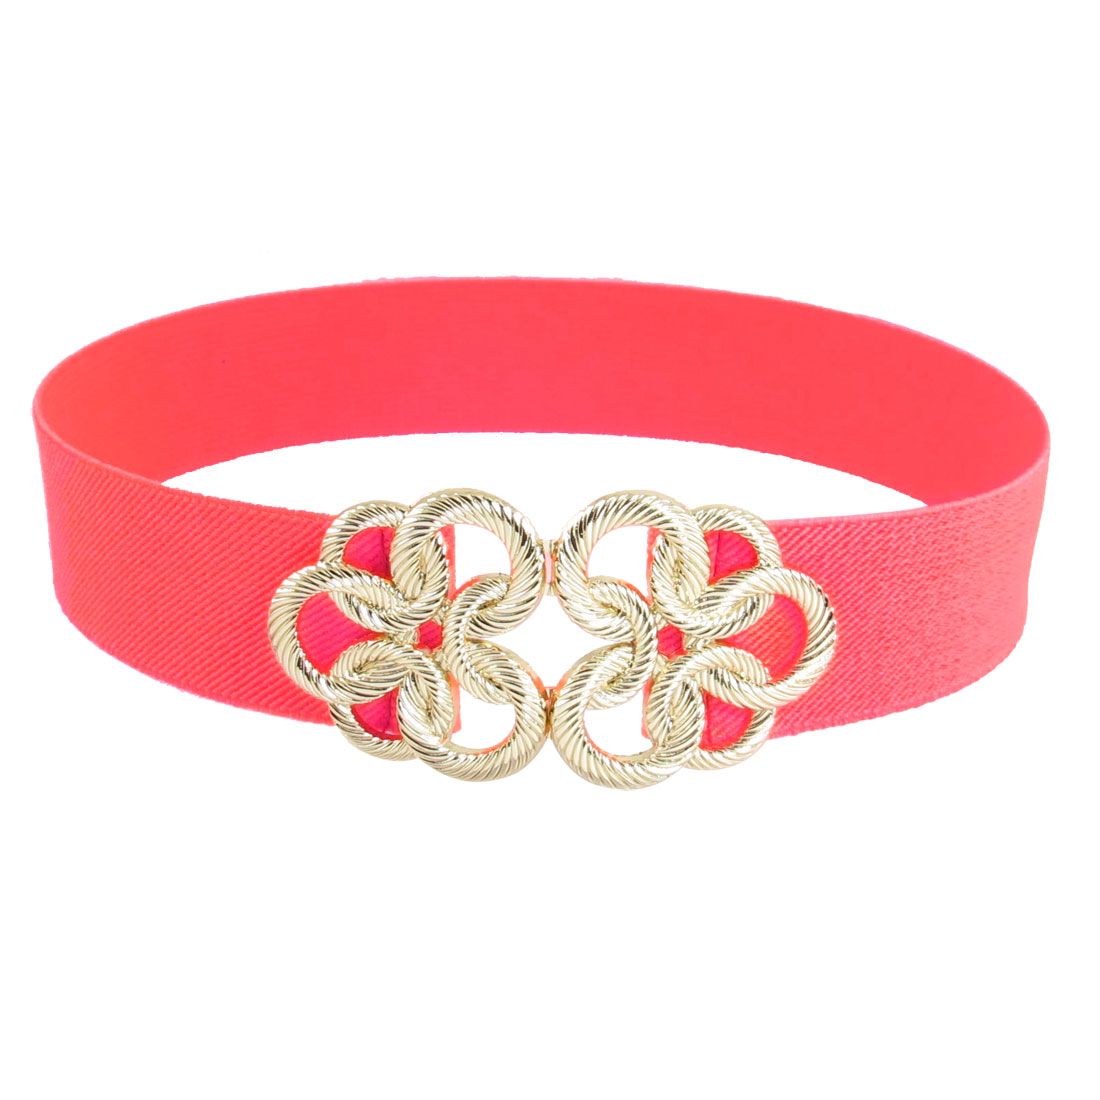 Gold Tone Twisted Circle Flower Buckle Pink Elastic Waist Cinch Belt Band